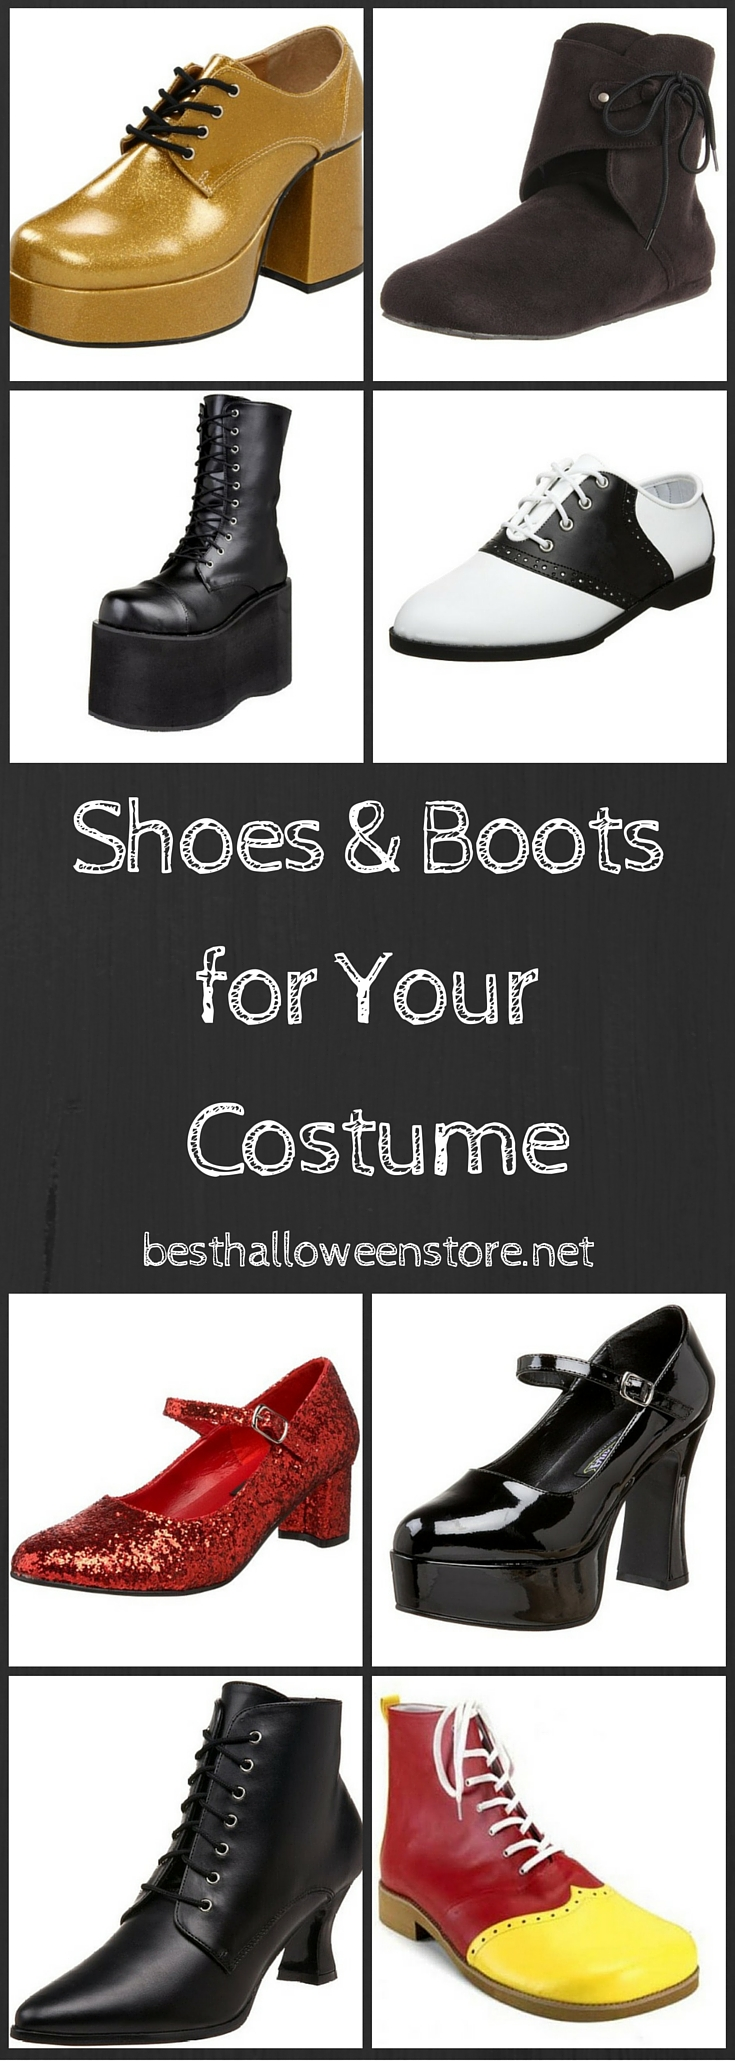 Funky Shoes & Boots for Your Retro Costume